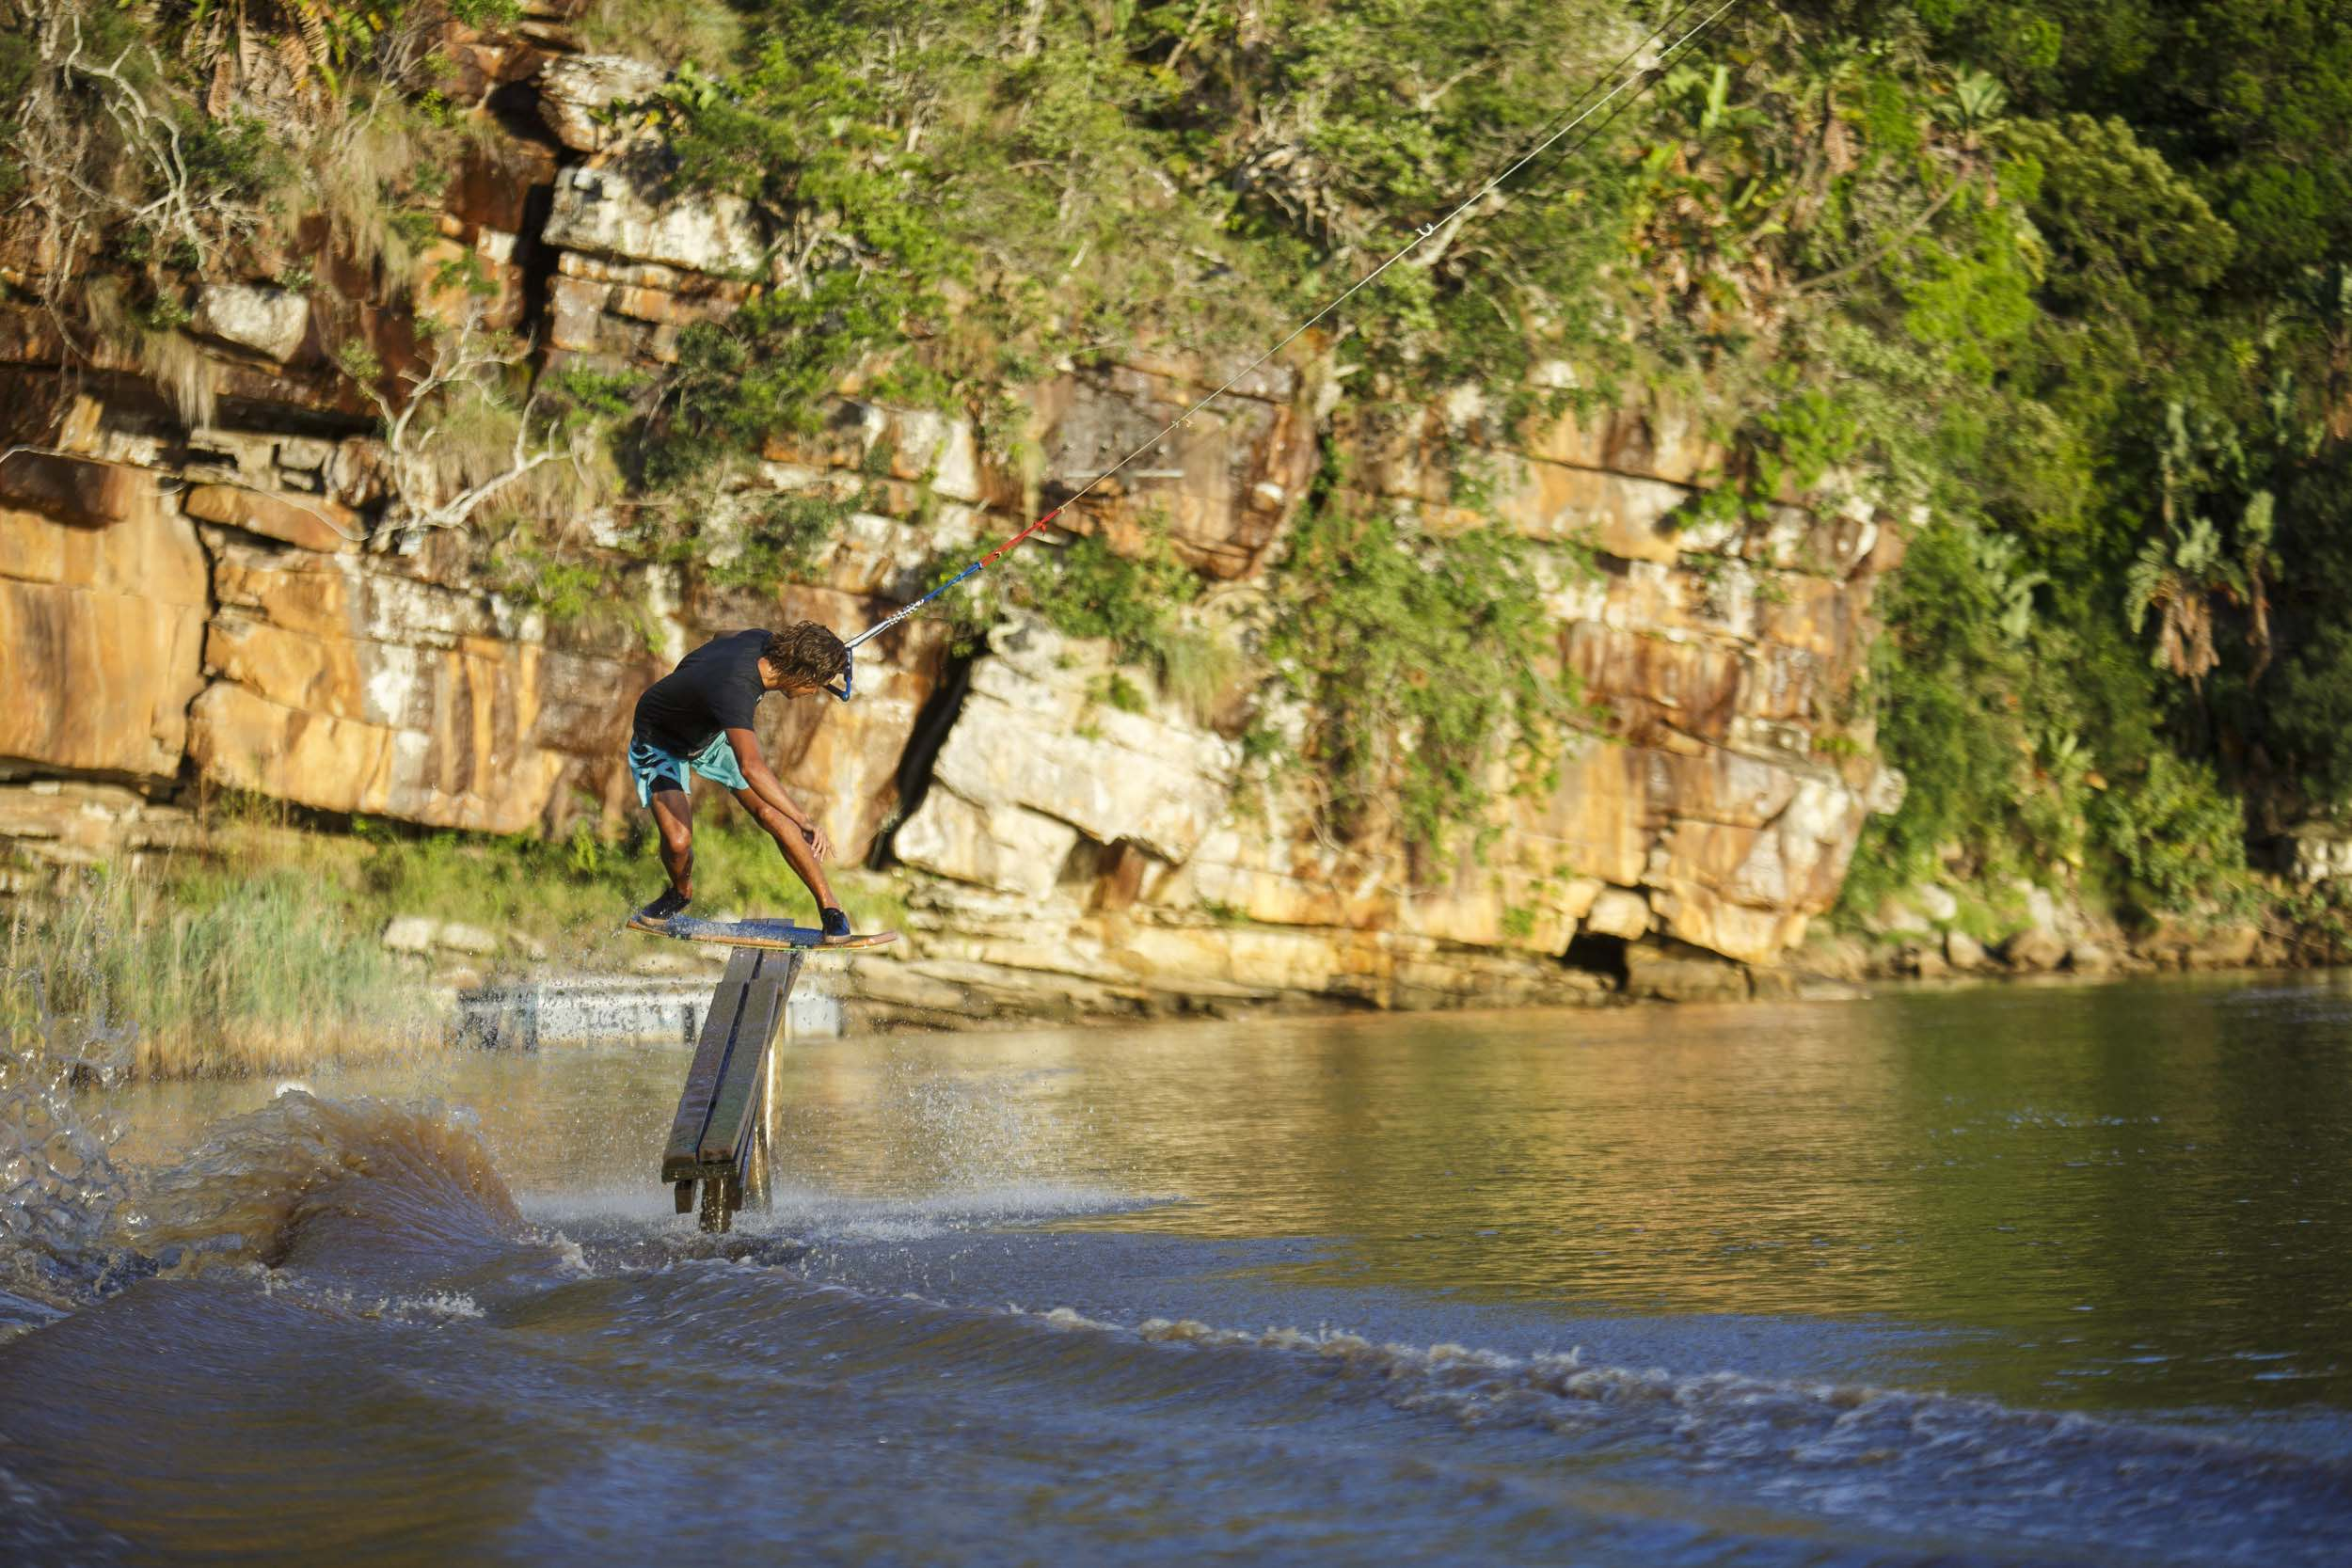 Matti Buys wake skating his way to victory at Stop 2 of the South African Wakeskate Tour